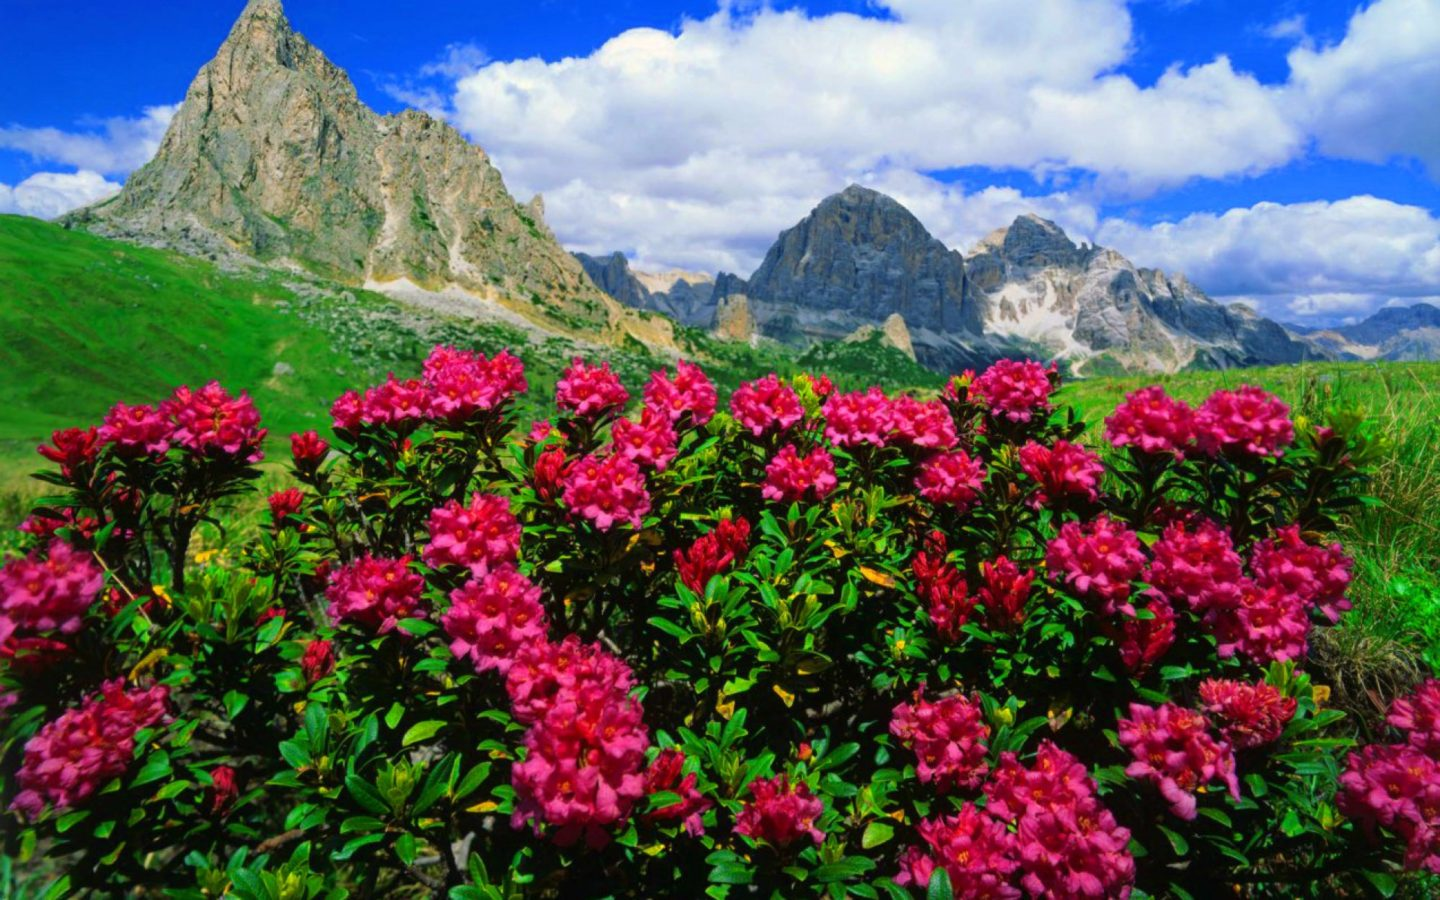 Old Wallpaper Iphone X Mountain Flowers Pink Roses And Green Meadows With Grass